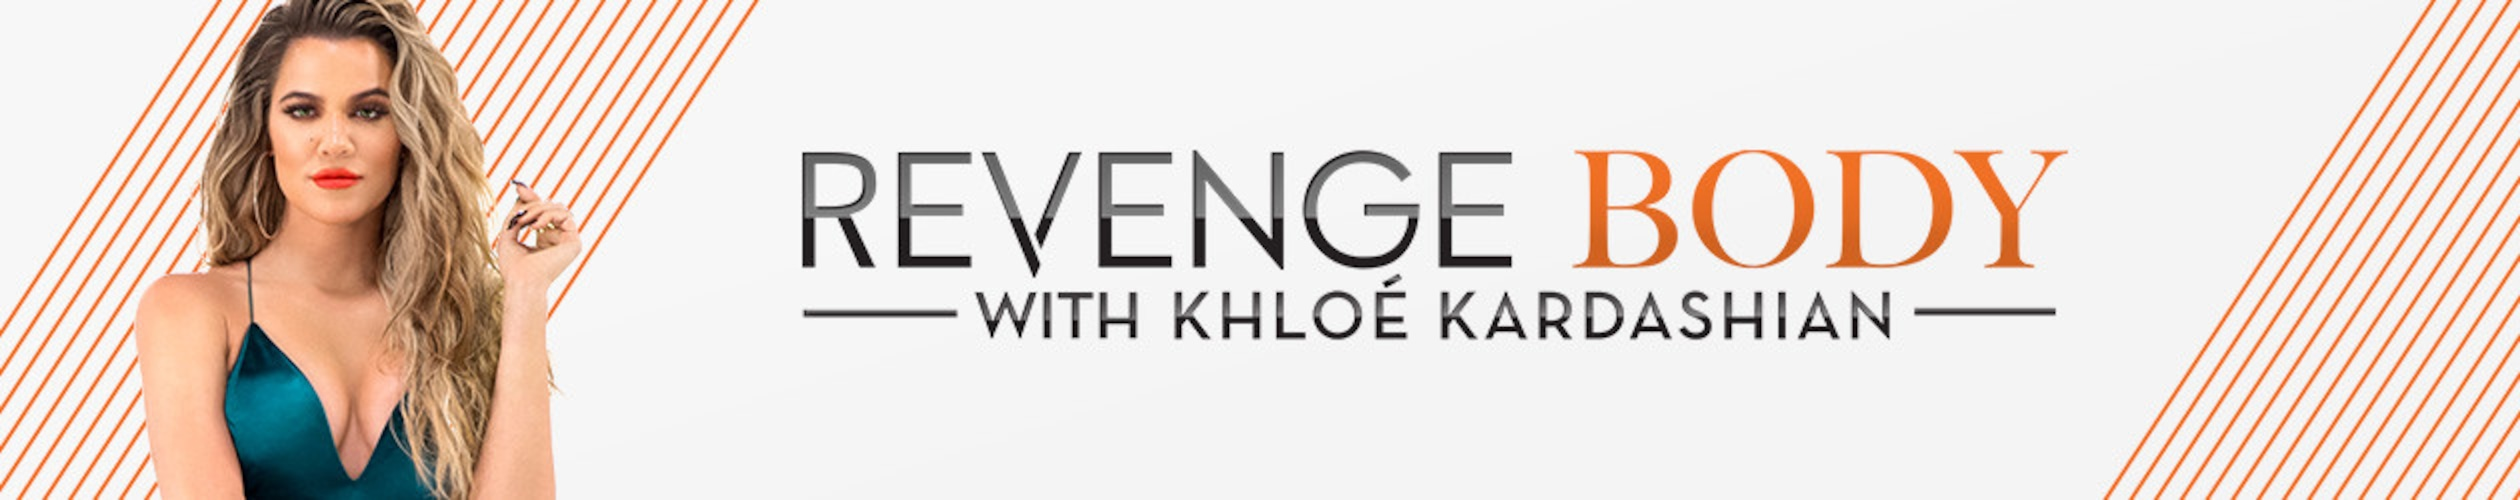 Revenge Body With Khloe Kardashian Tune-In Banner